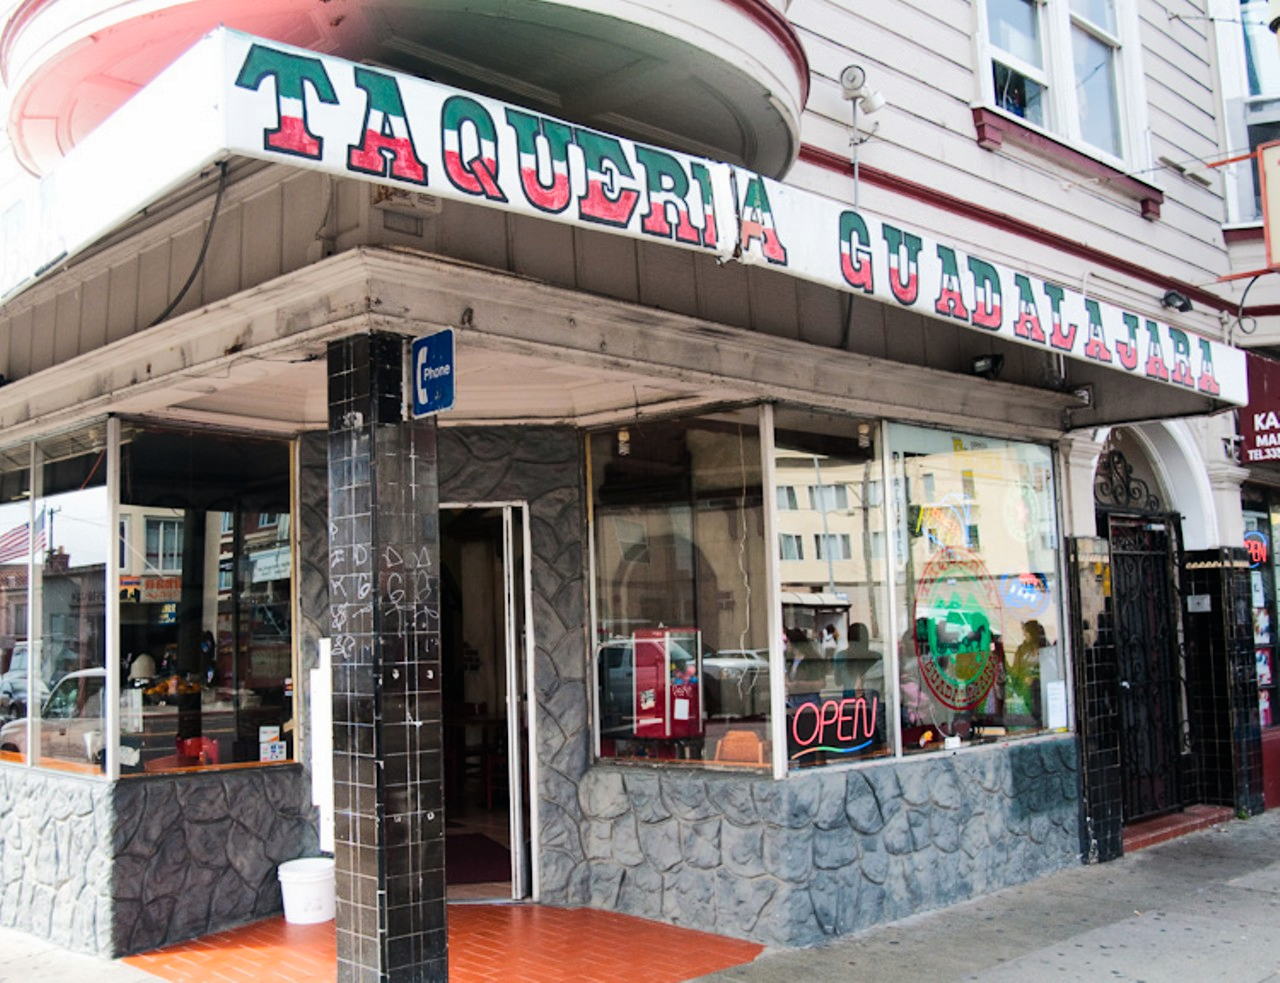 Taqueria Guadalajara is a popular neighborhood joint known for its burritos.